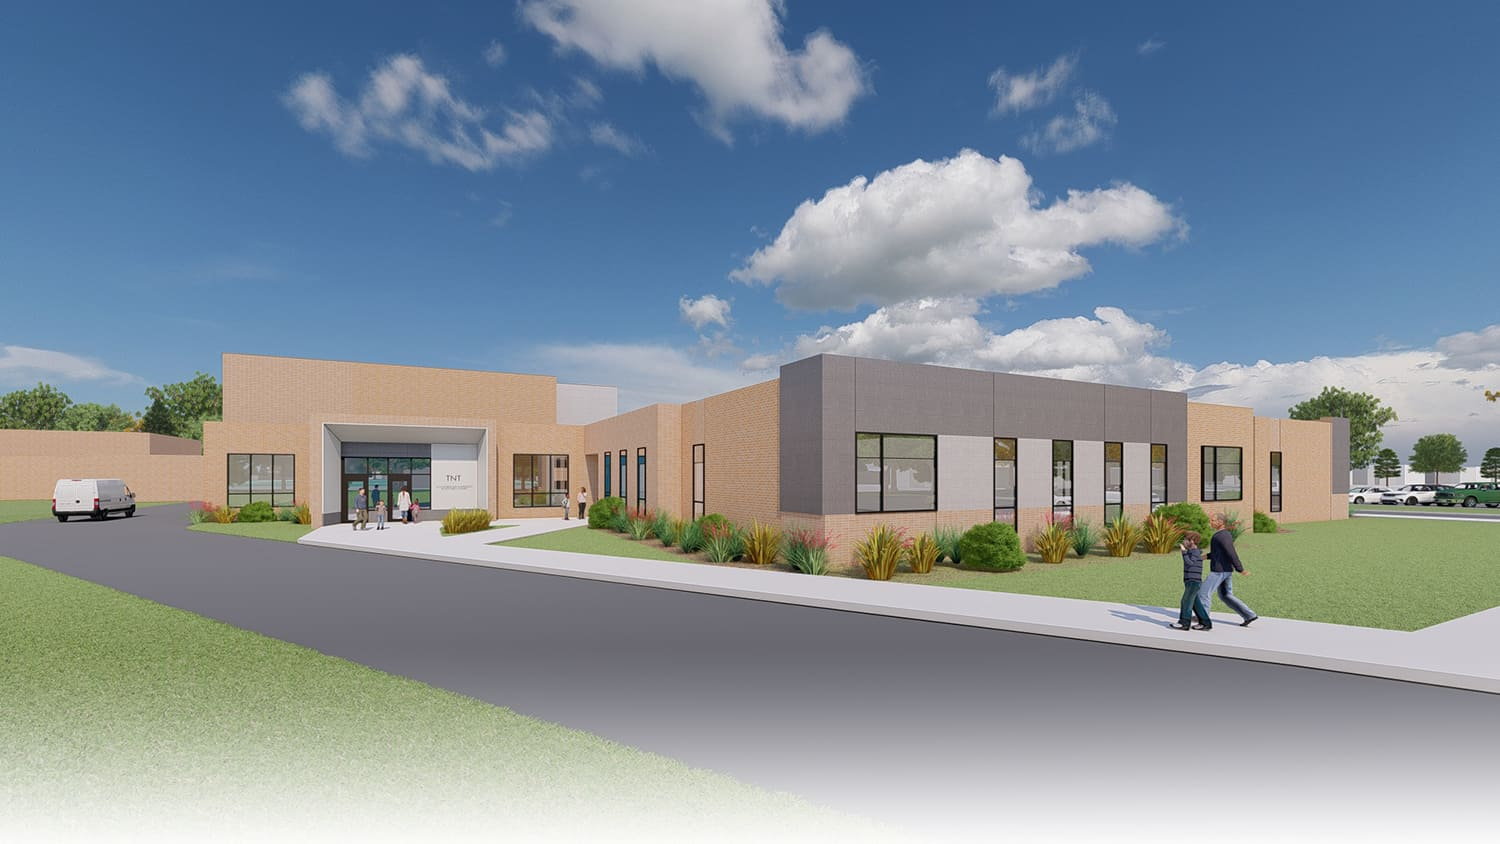 Rendering of the exterior entry to the community-based sensory gym.